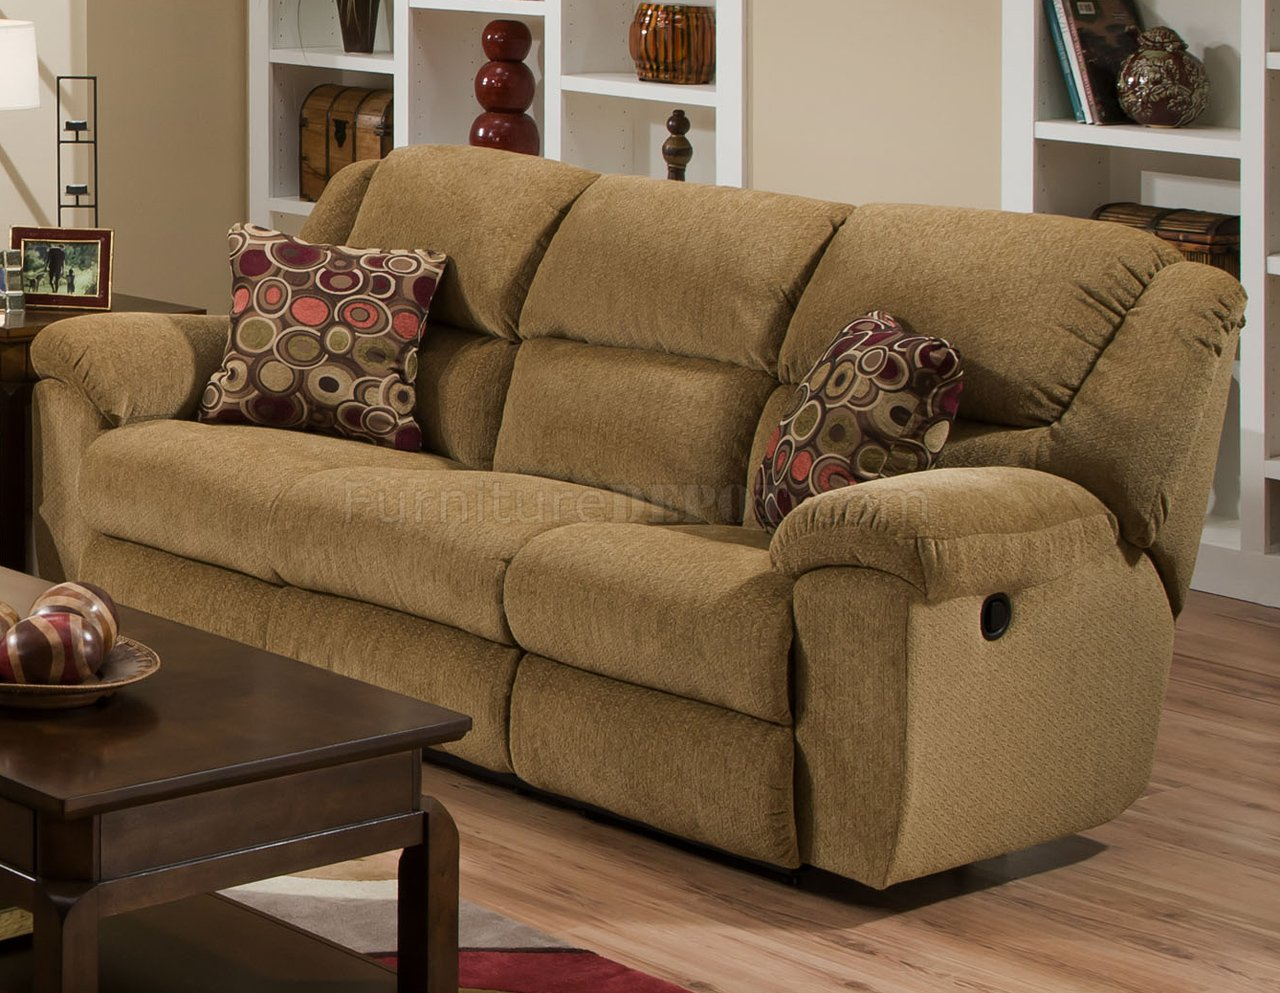 Beige Chenille Fabric Transformer Reclining Sofa Loveseat Set